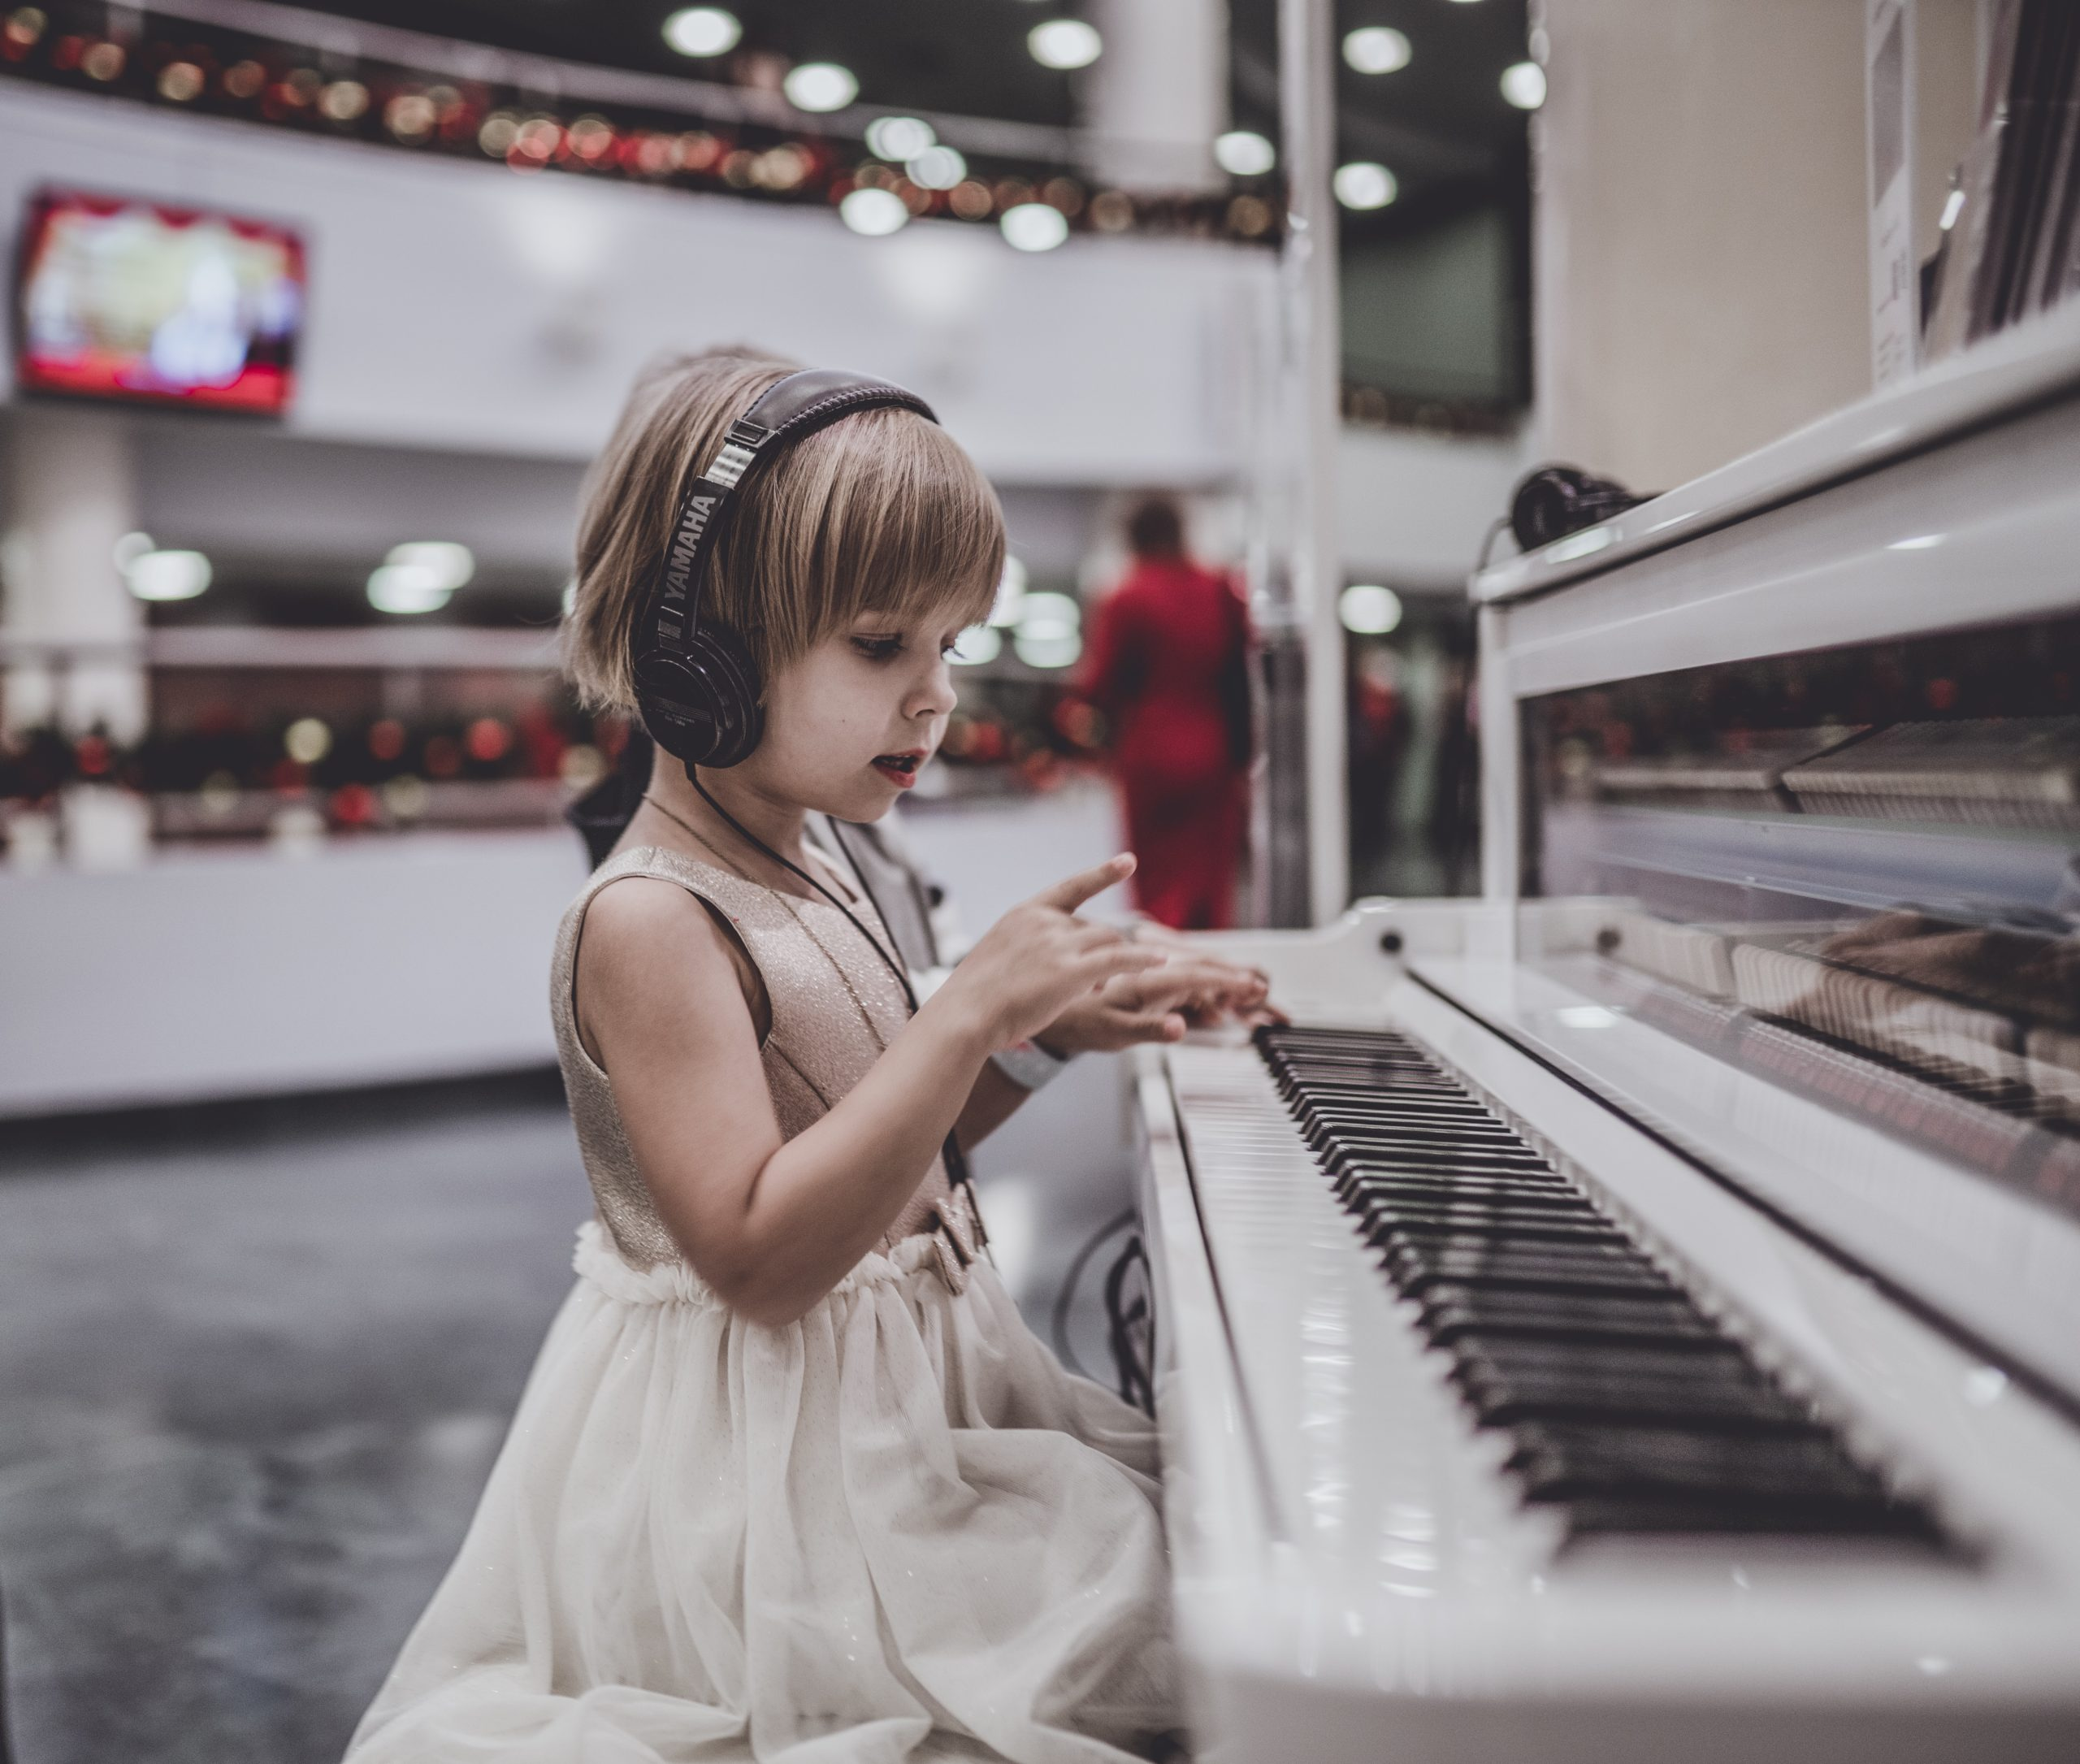 The real reason why musicians are better people | Musick Road